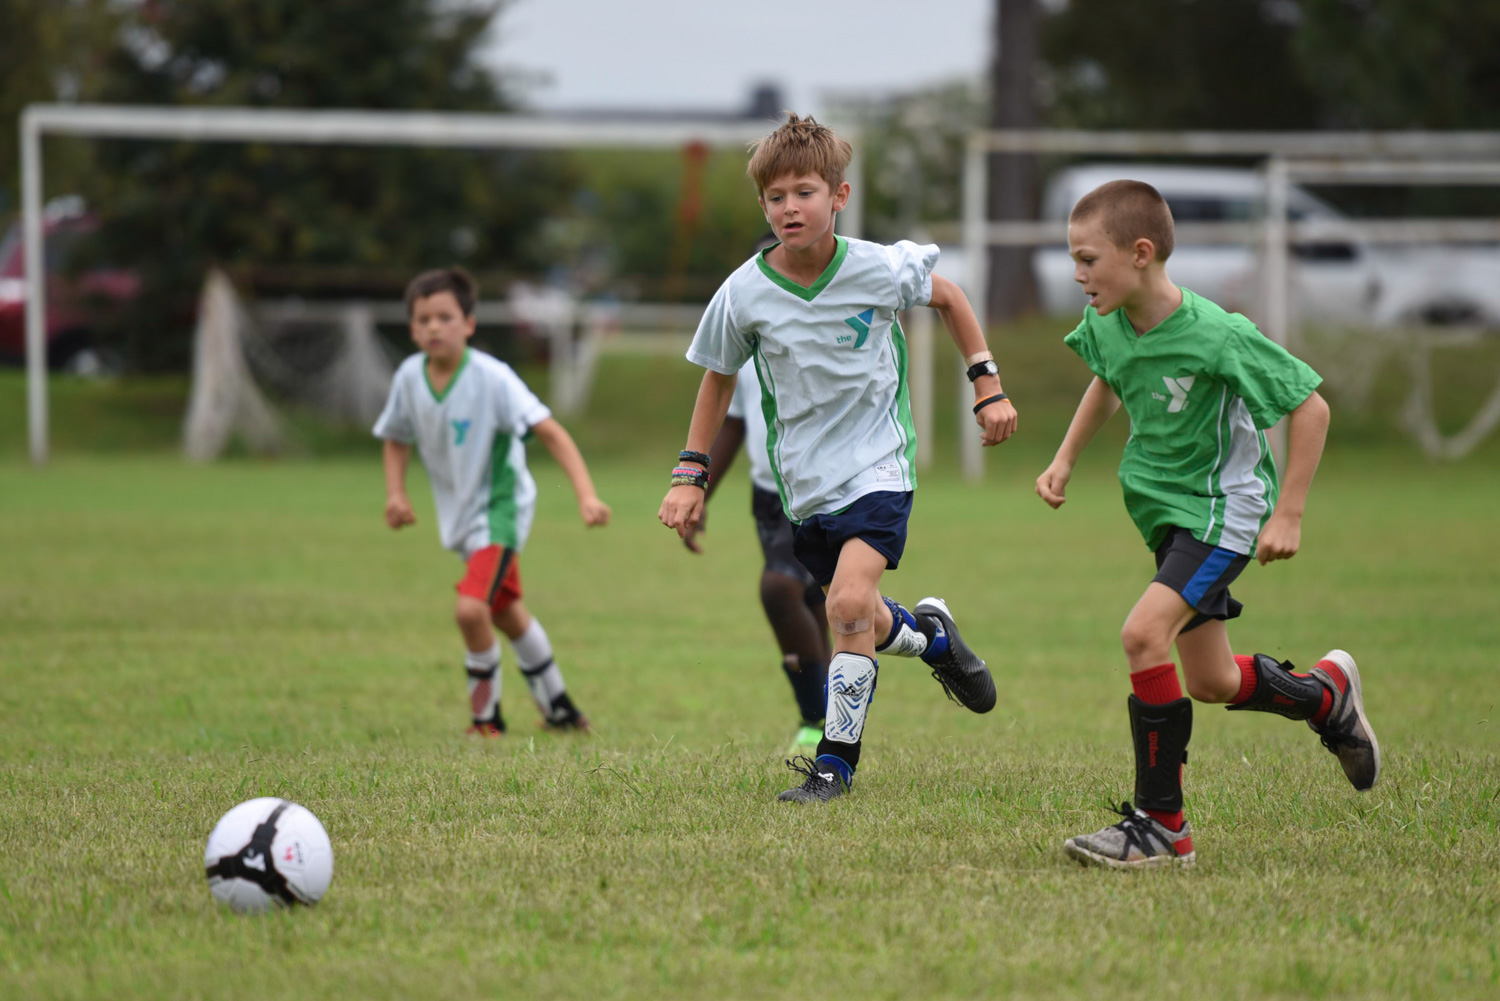 capture-fast-action-photos-soccer-multiple-kids